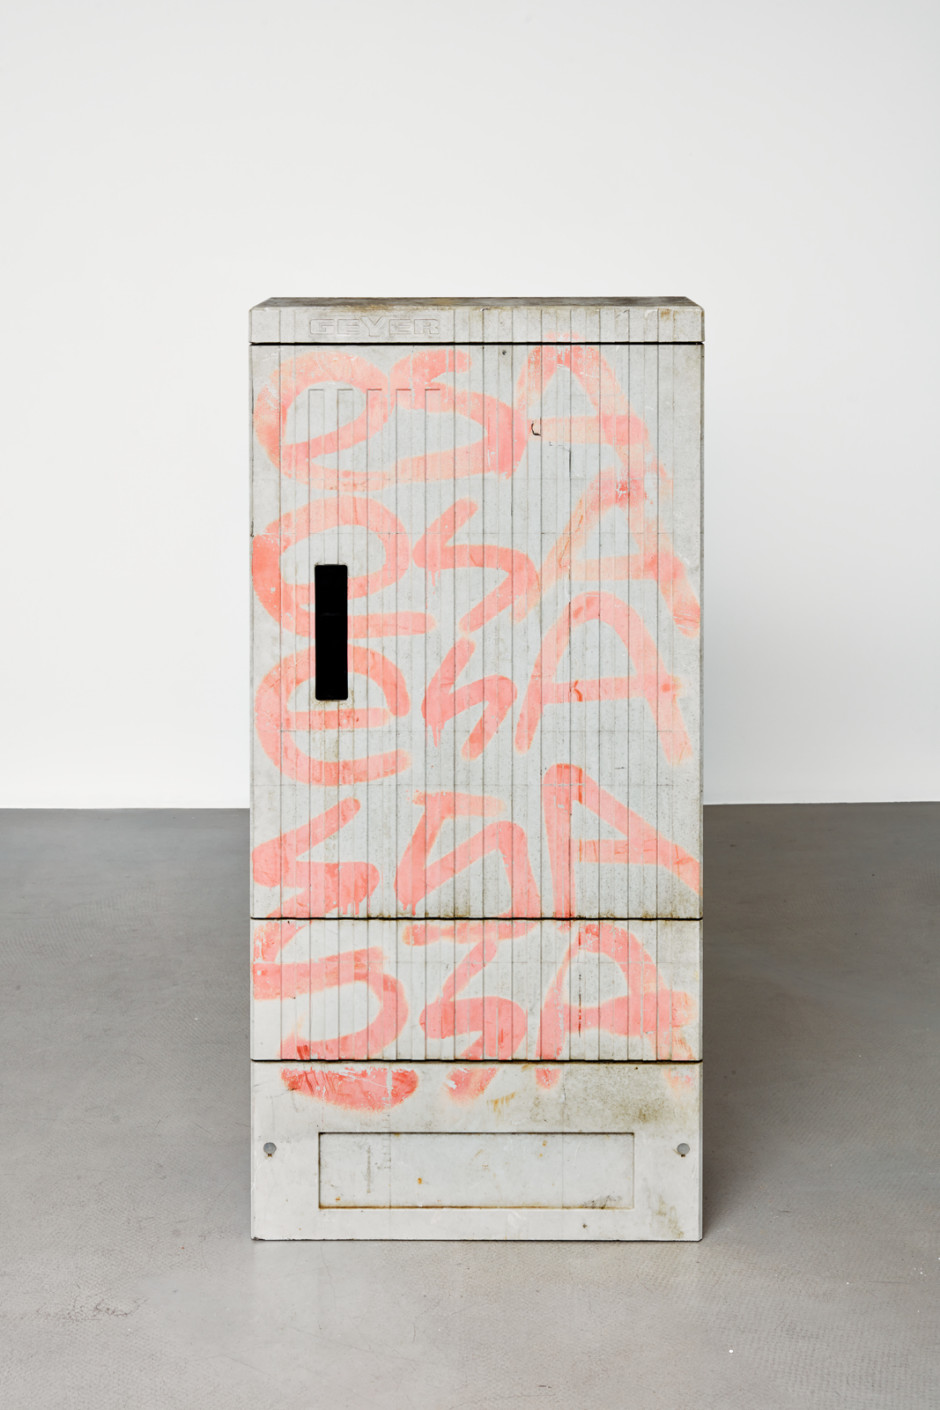 Klara Liden  Esaesa, 2020  junction box  130.4 x 58.2 x 27.6 cm / 51 ⅜ x 22 ⅞ x 10 ⅞ in